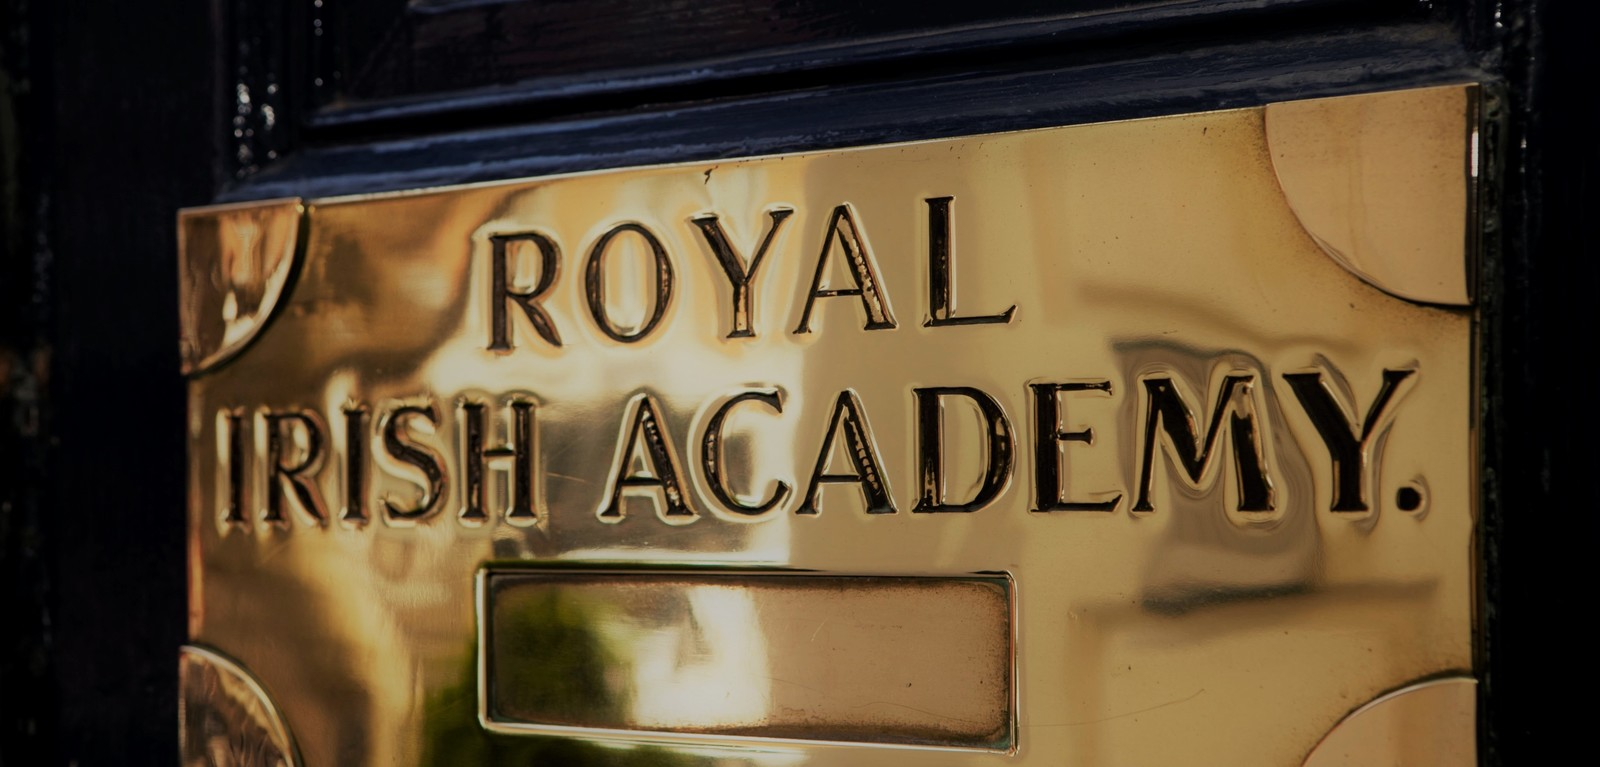 Royal Irish Academy door